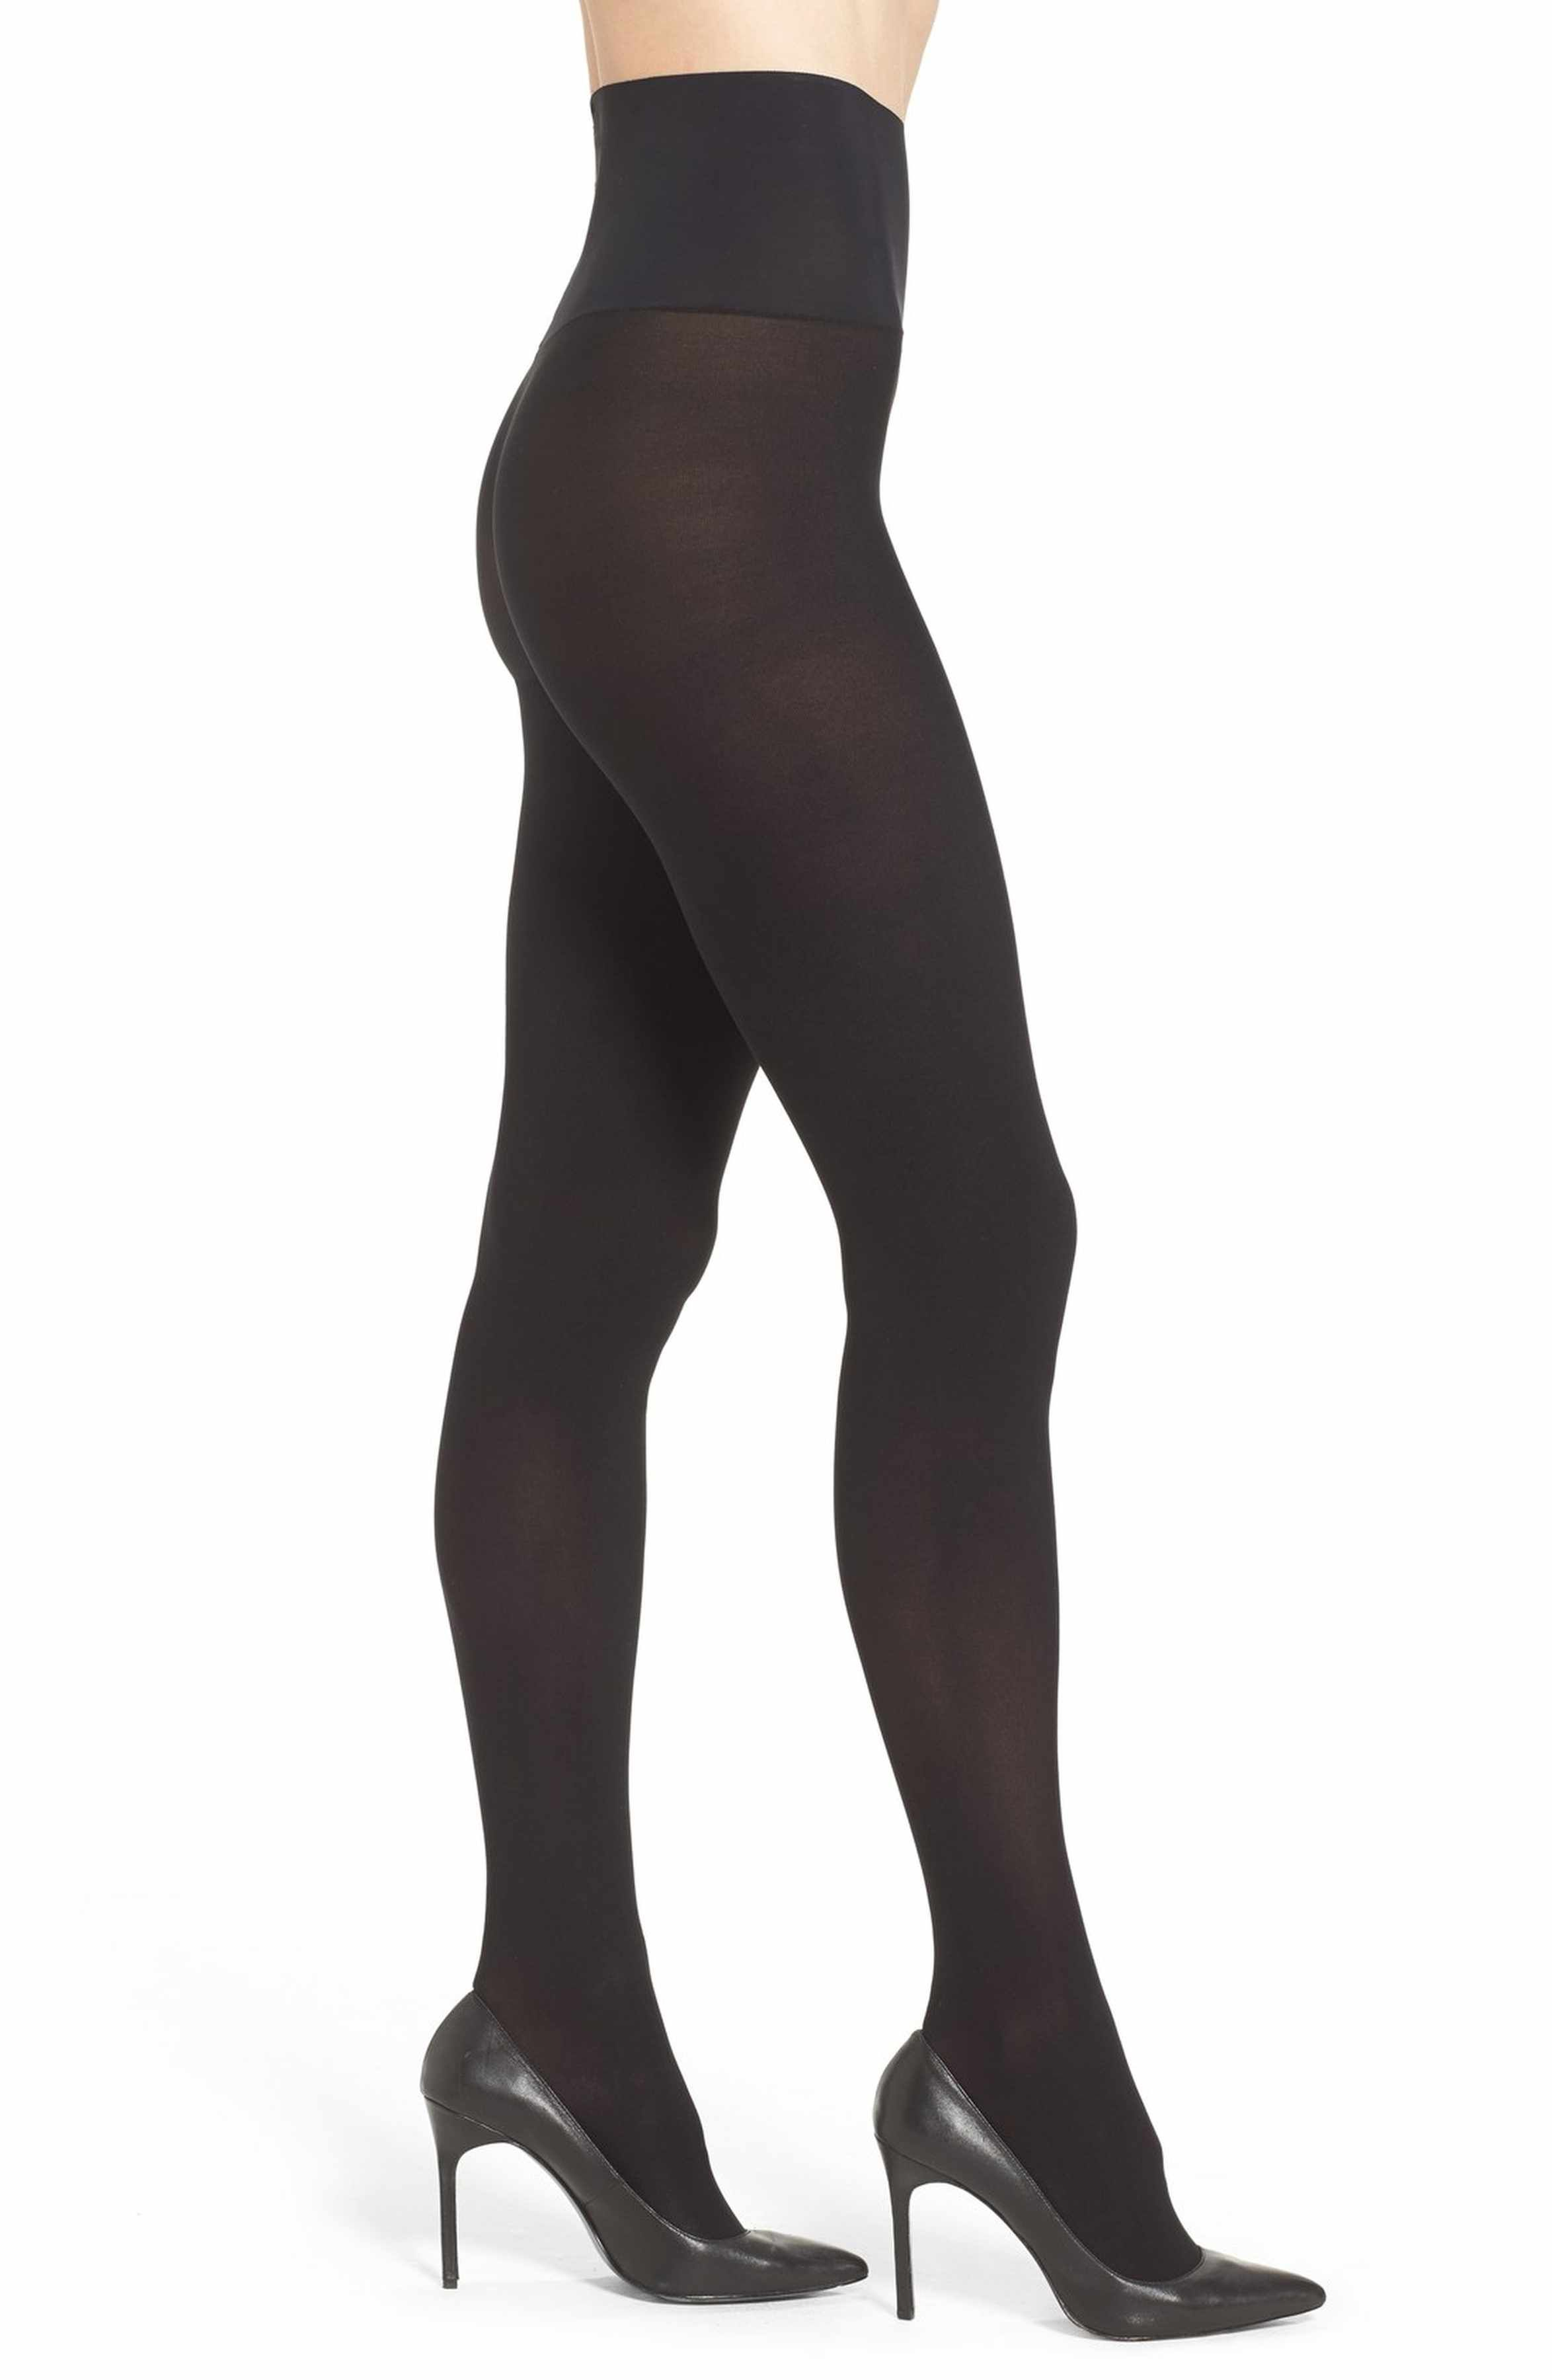 db095f576f6c0 Main Image - Commando Ultimate Opaque Matte Tights | Gifts: Wish ...